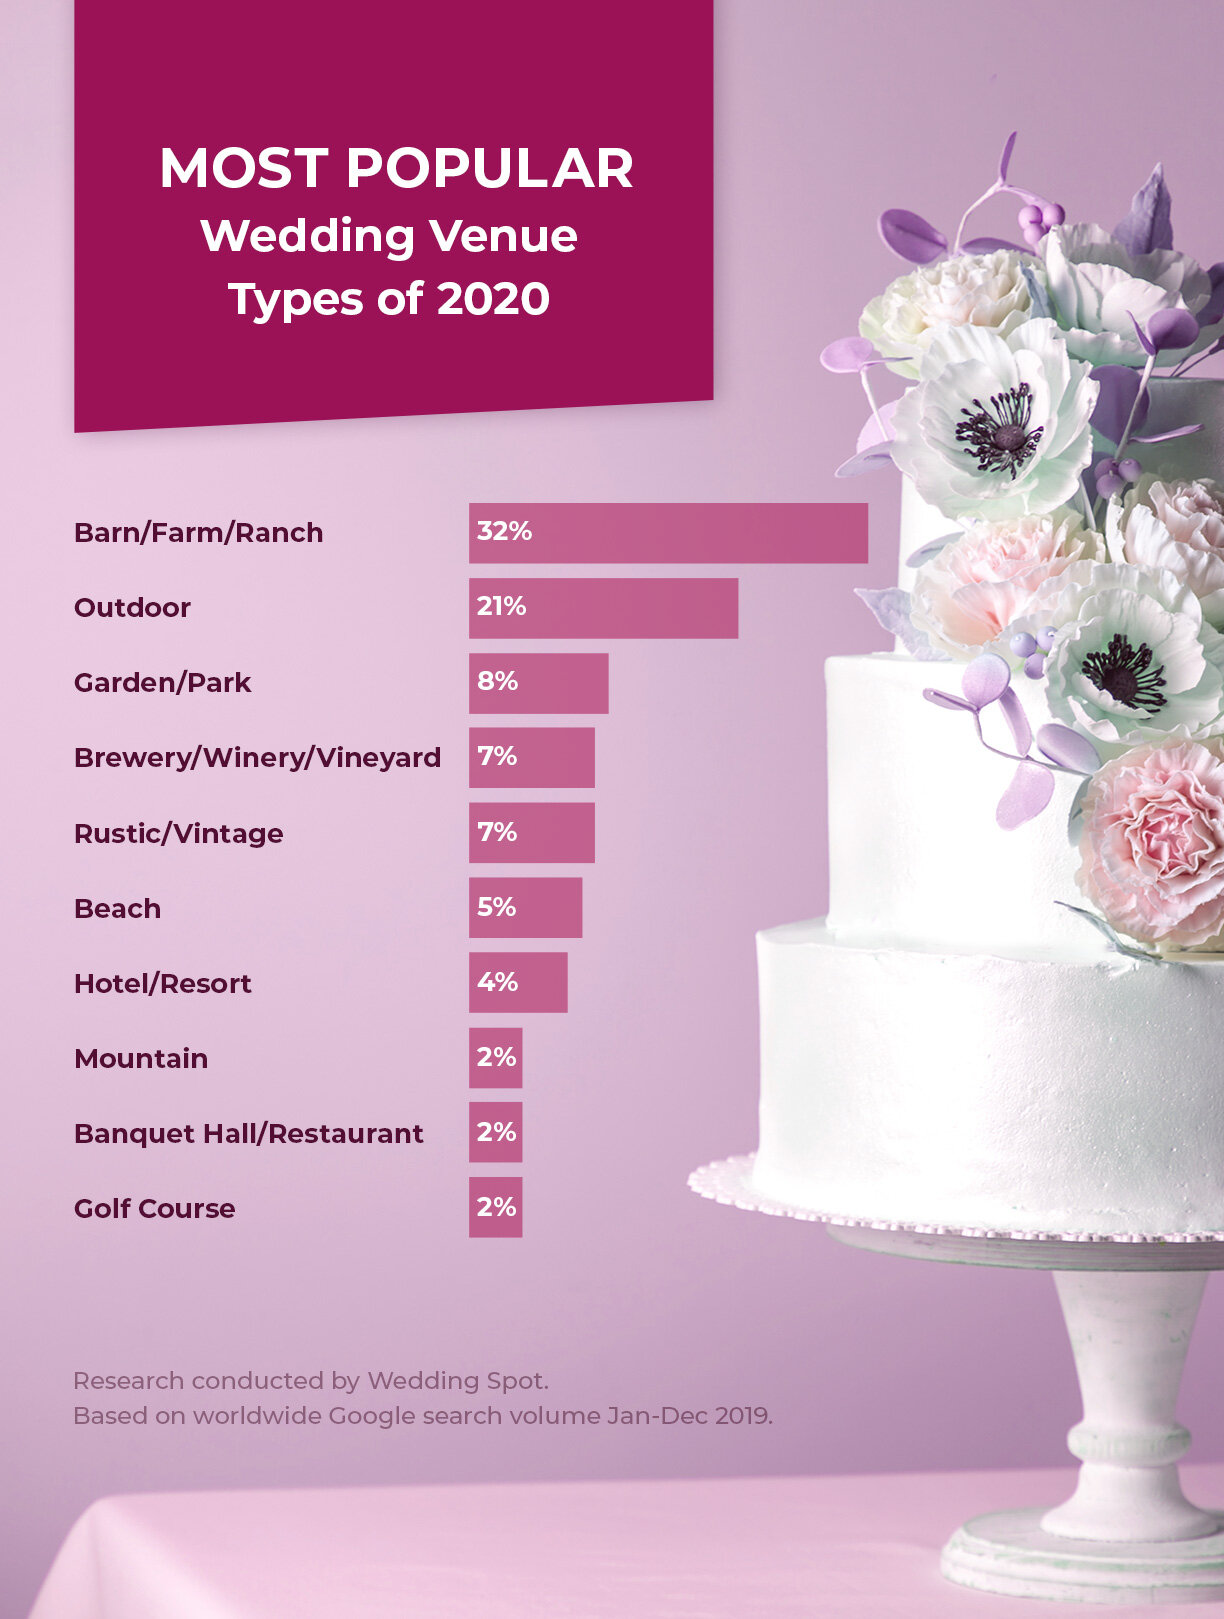 Most Popular Wedding Venue Types of 2020.jpg